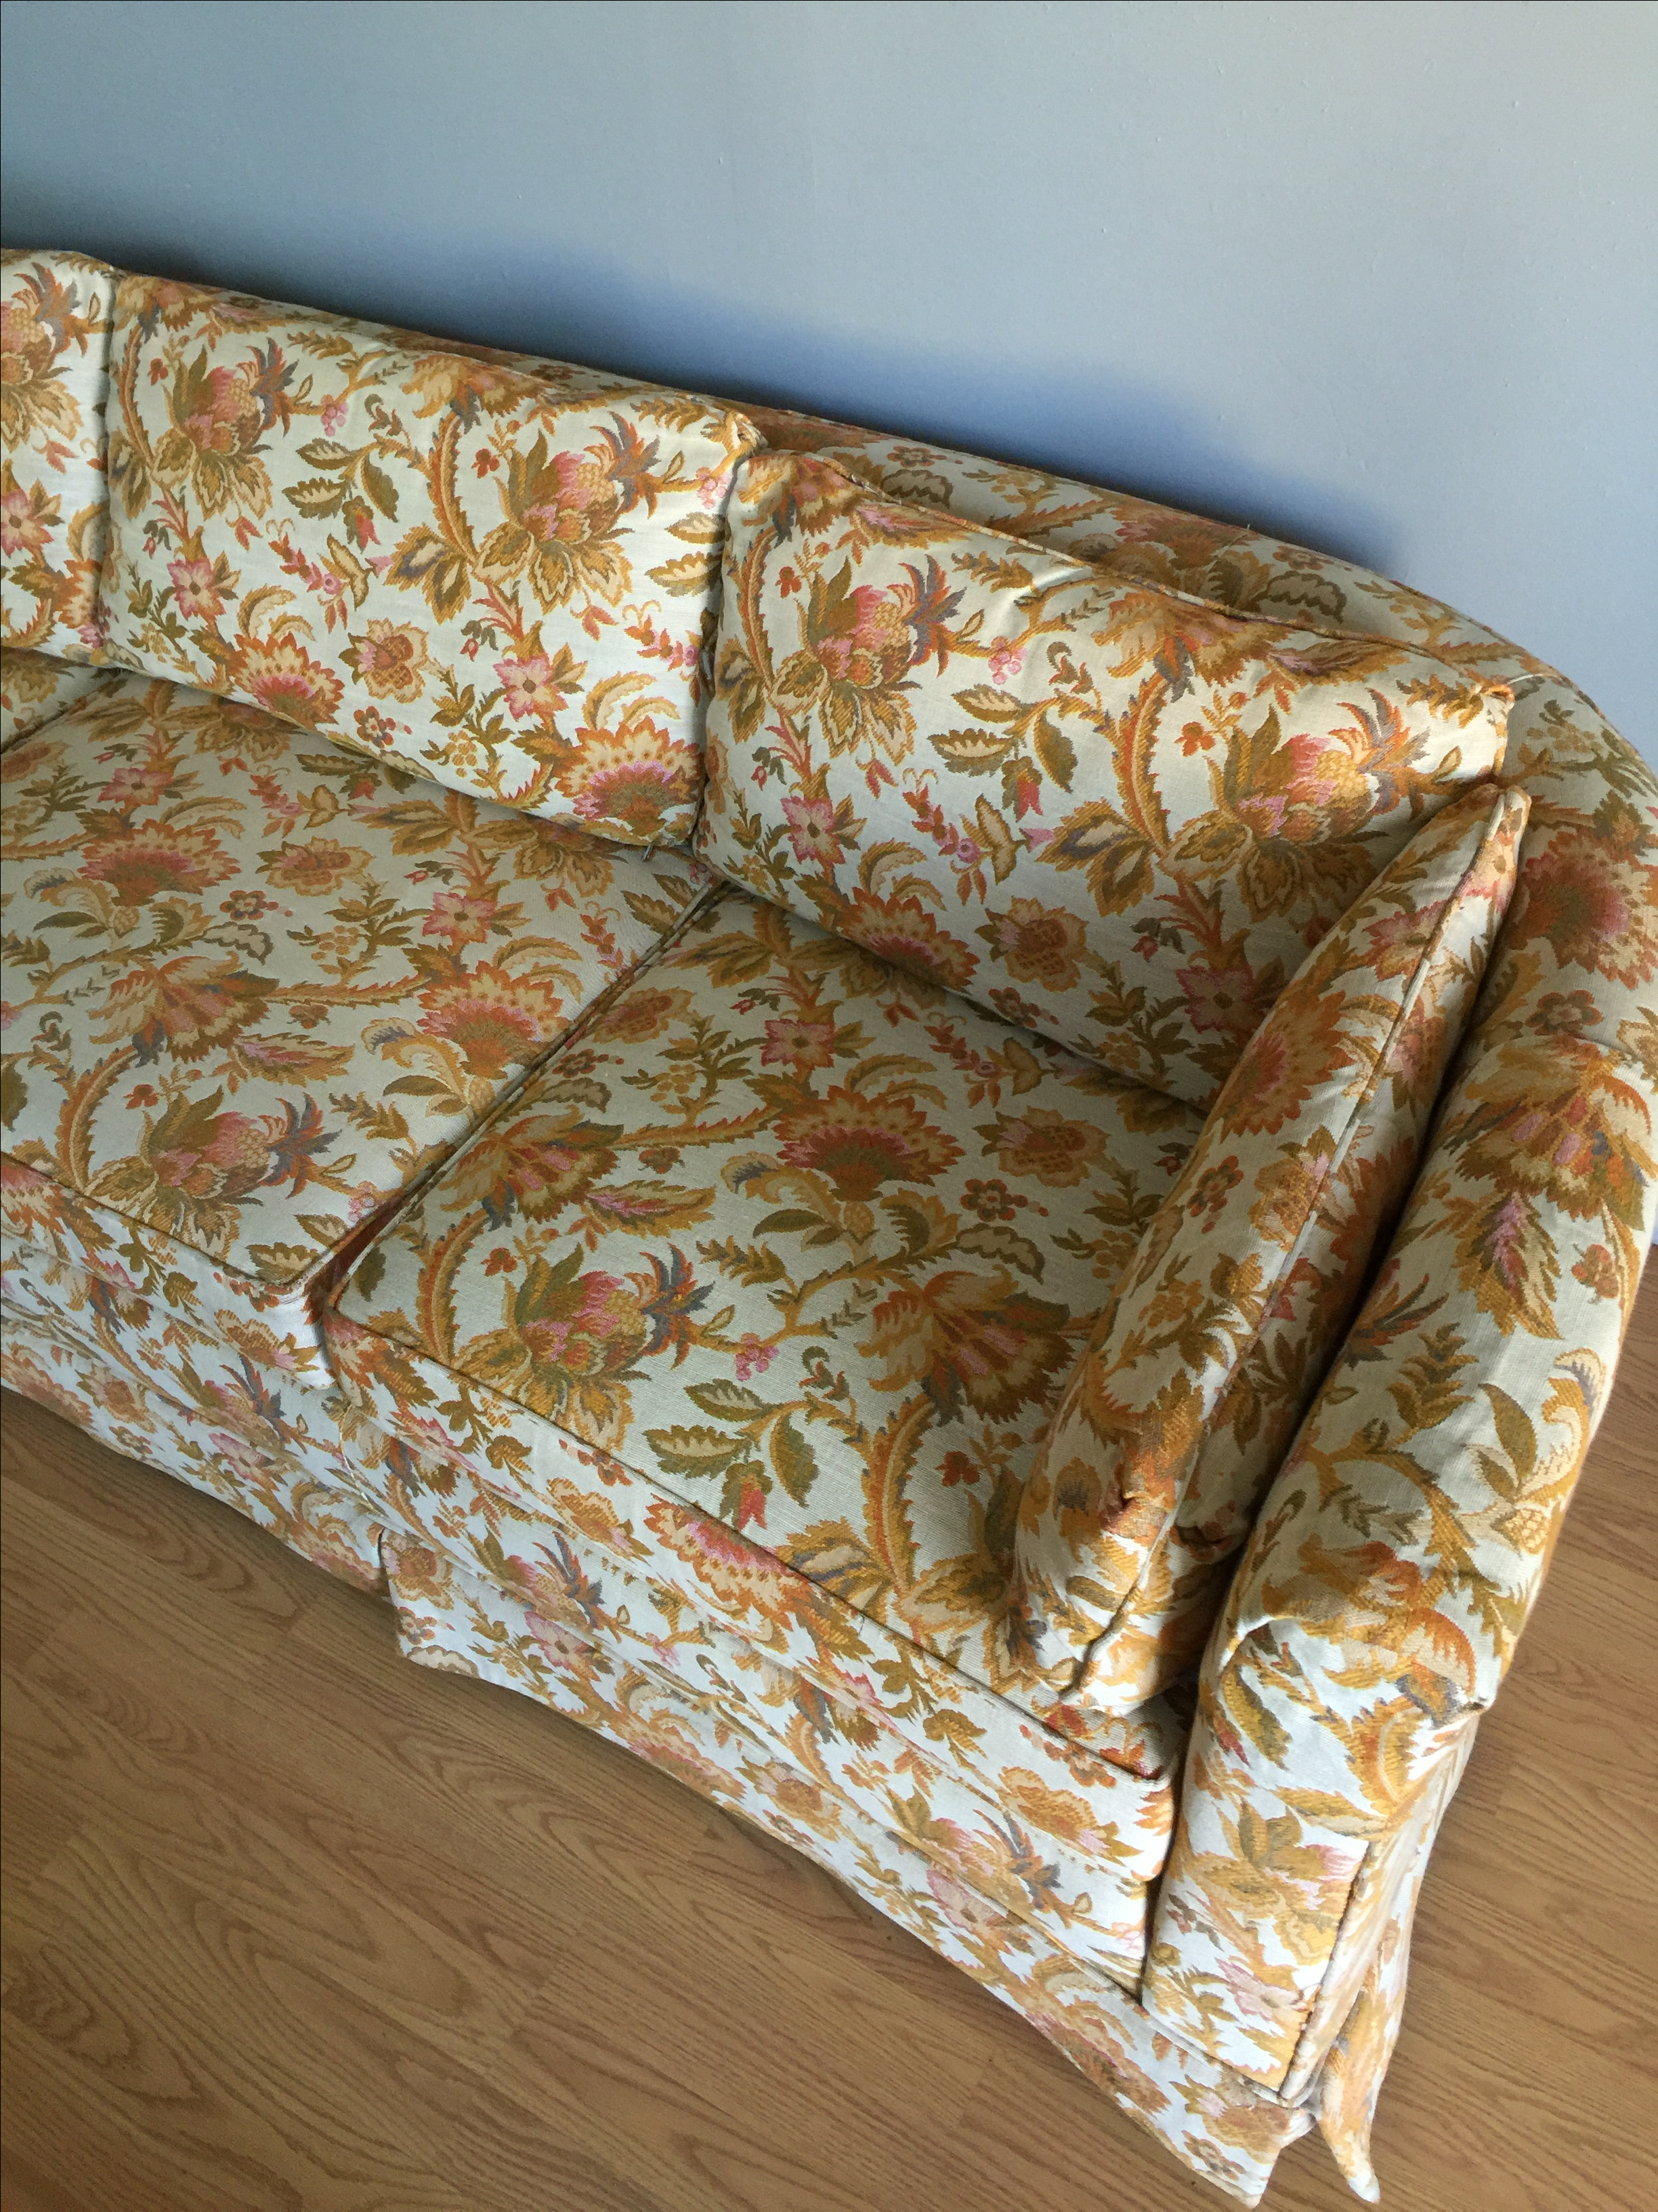 Drexel Mid Century Hollywood Regency Floral Curved Back Sofa   Image 3 Of 6